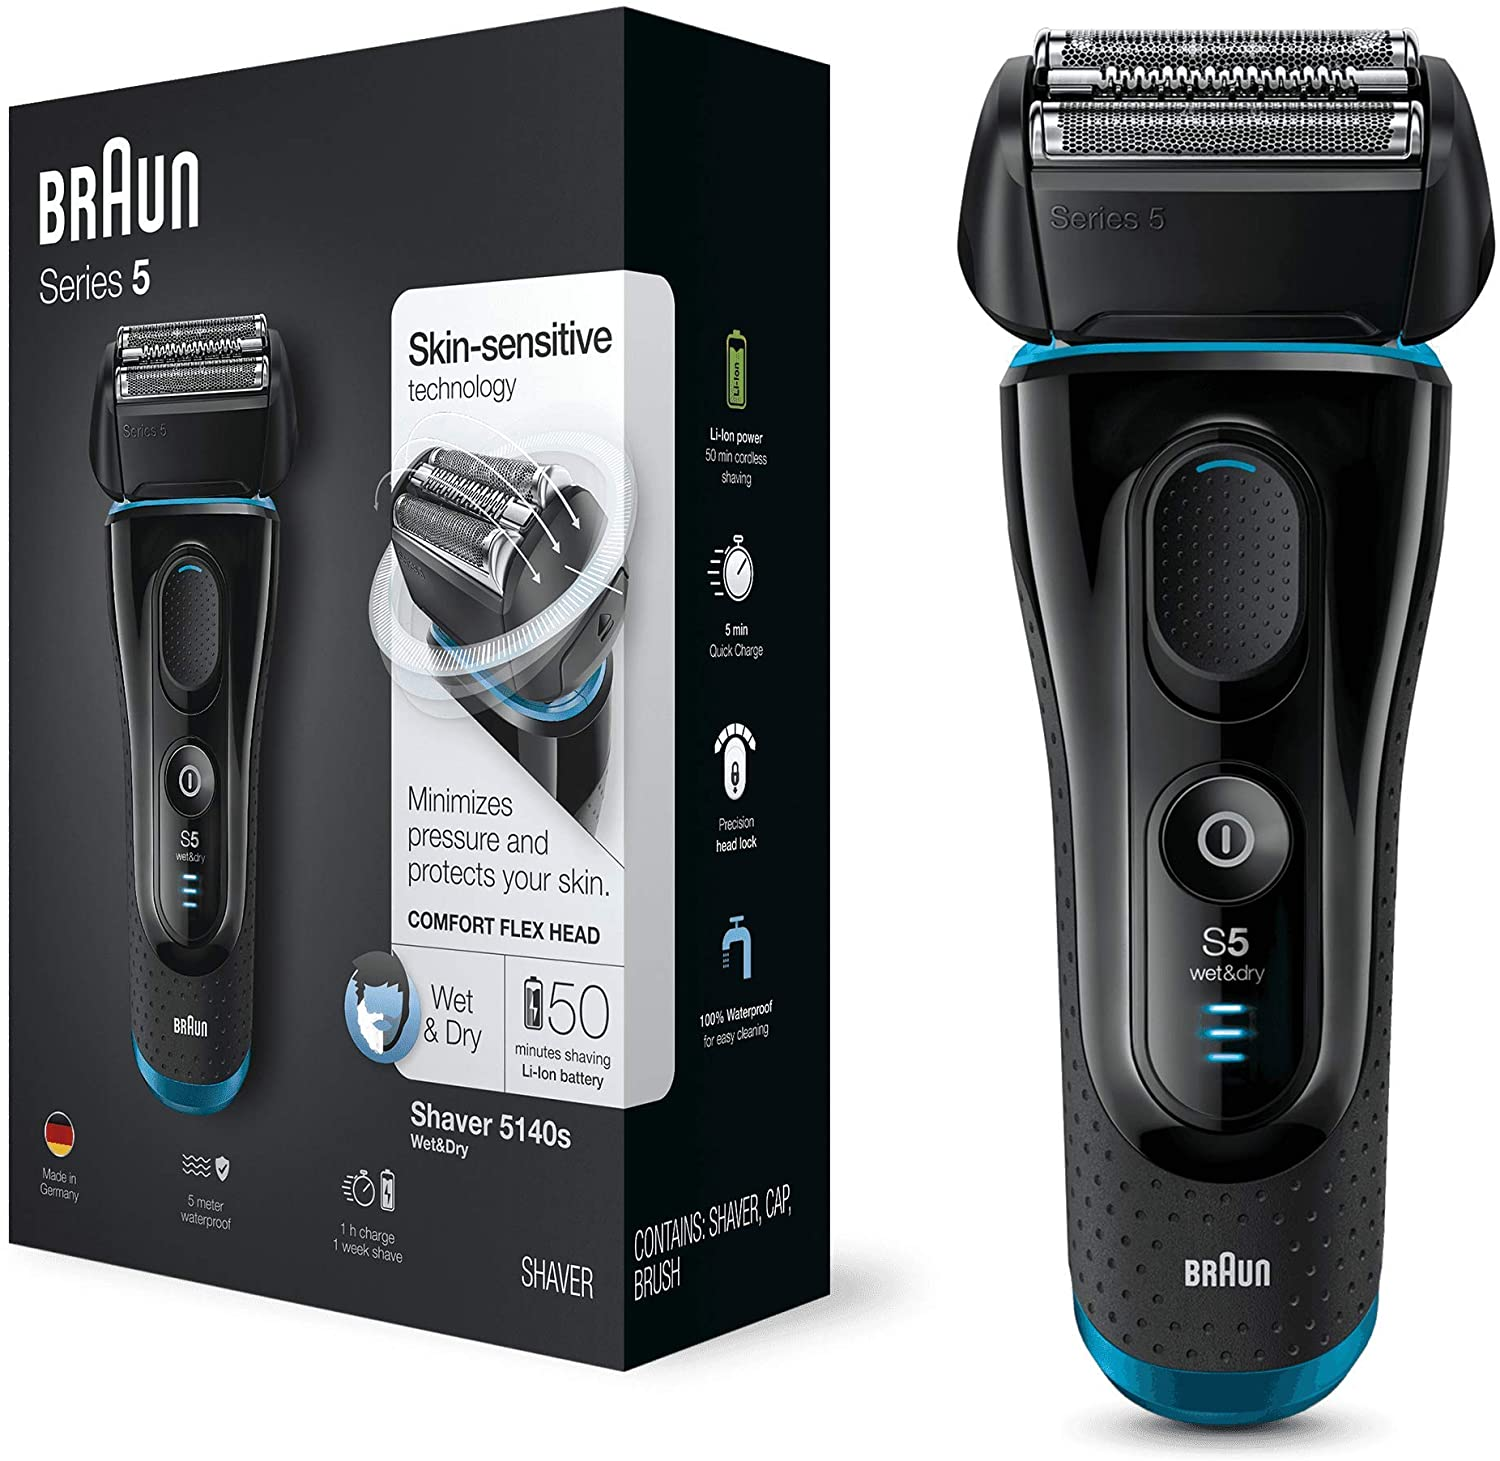 10 best electric shavers 2021 in the UK